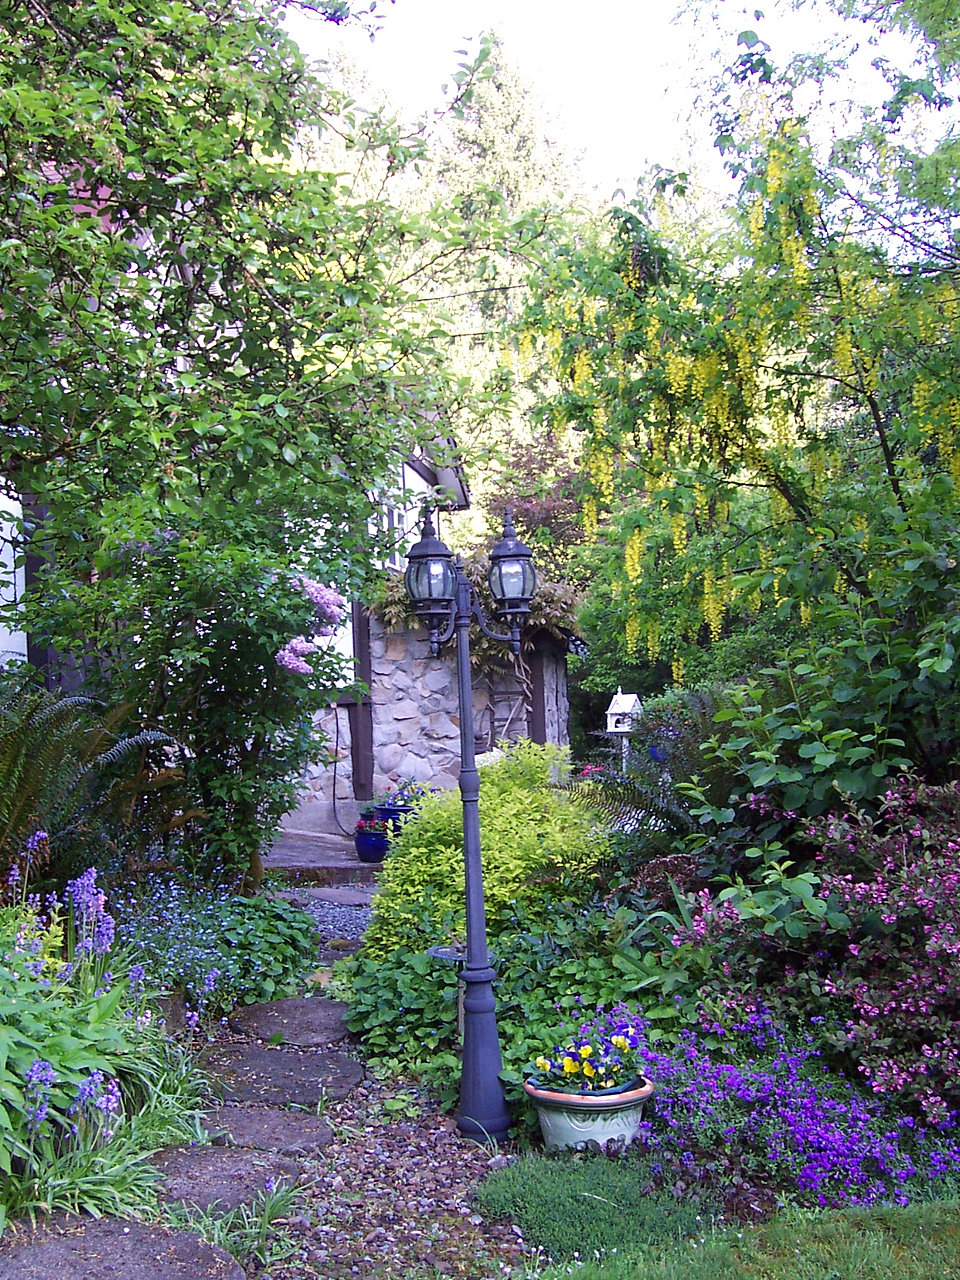 Along the Garden Path